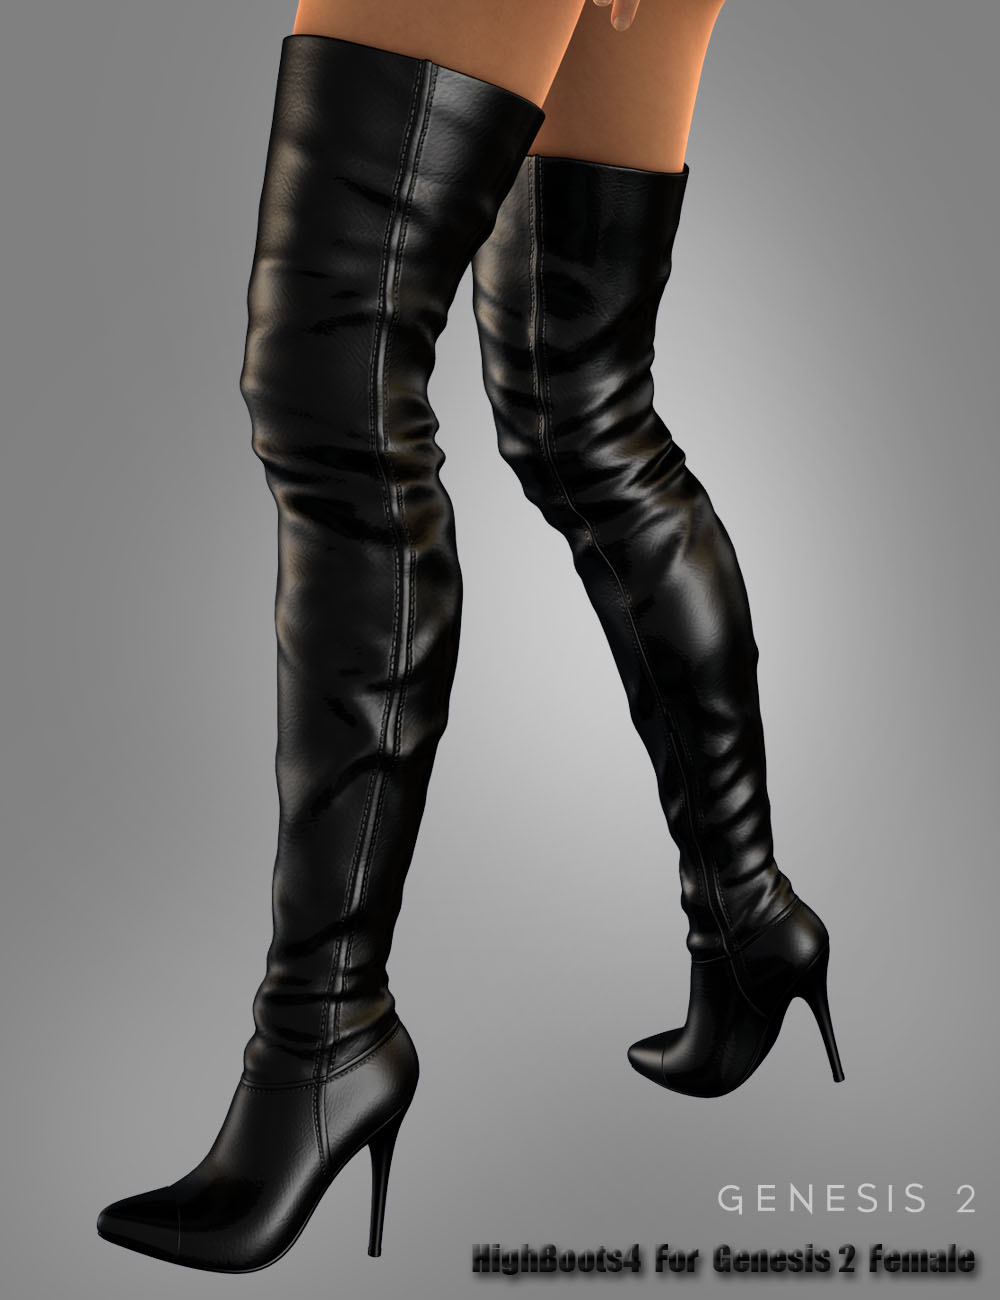 High Boots 4 For Genesis 2 Female(s) by: dx30, 3D Models by Daz 3D